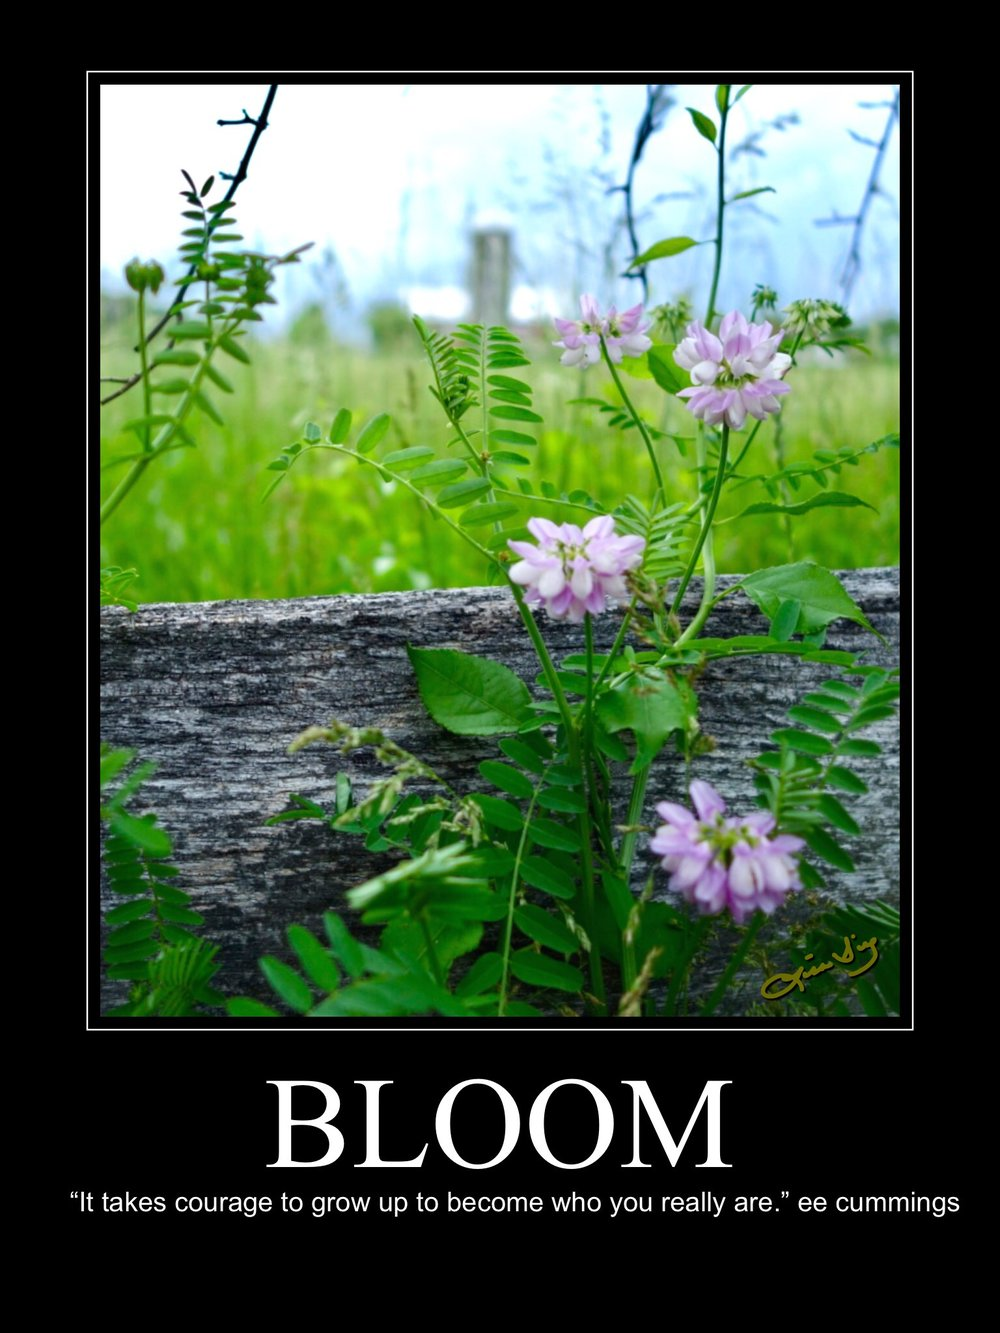 Bloom new poster.JPG